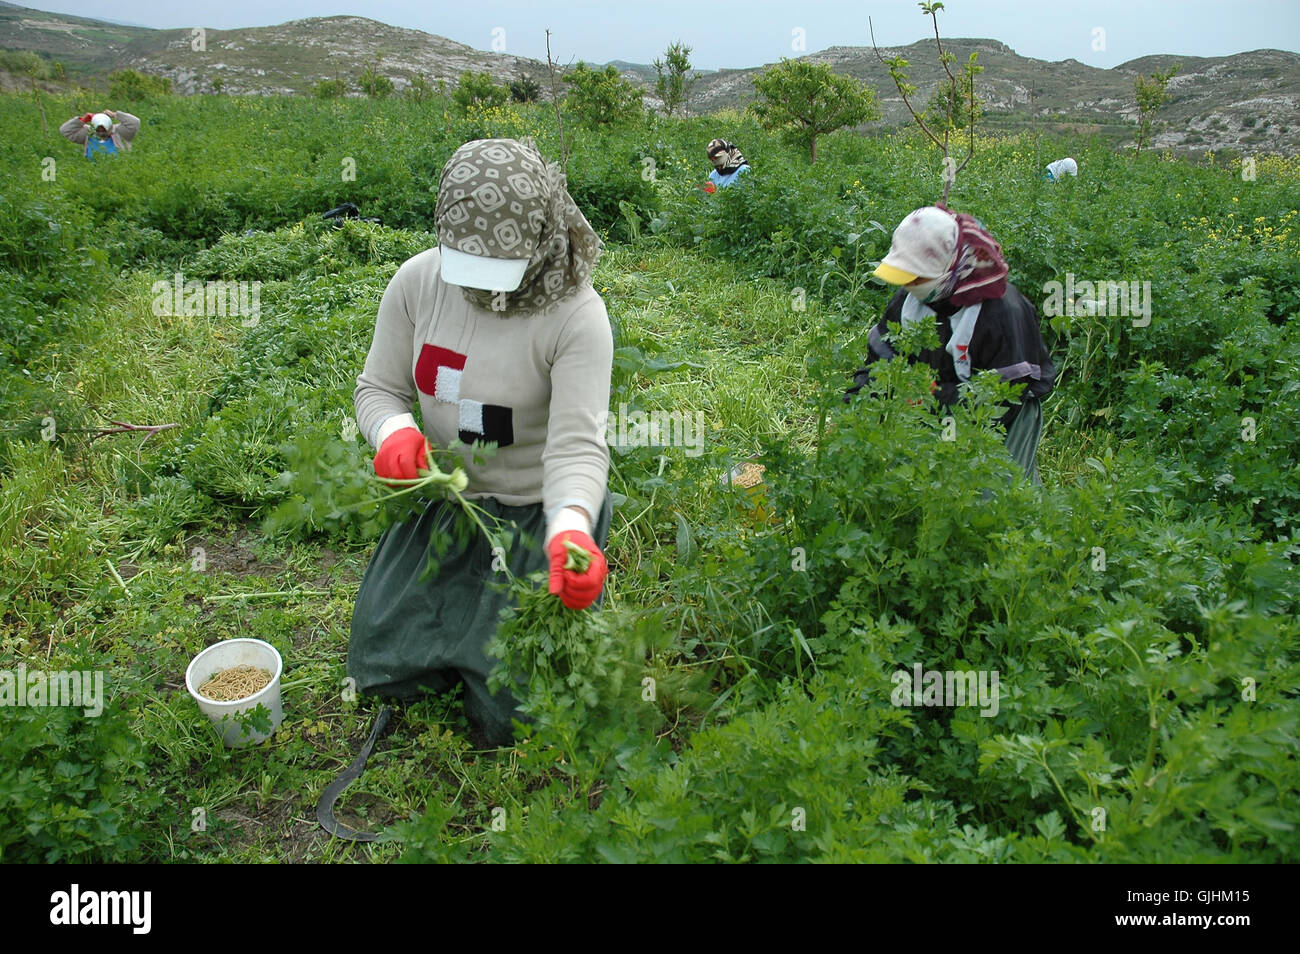 seasonal workers picking fruit stock photos seasonal workers seasonal agricultural workers work in the farm in adana stock image